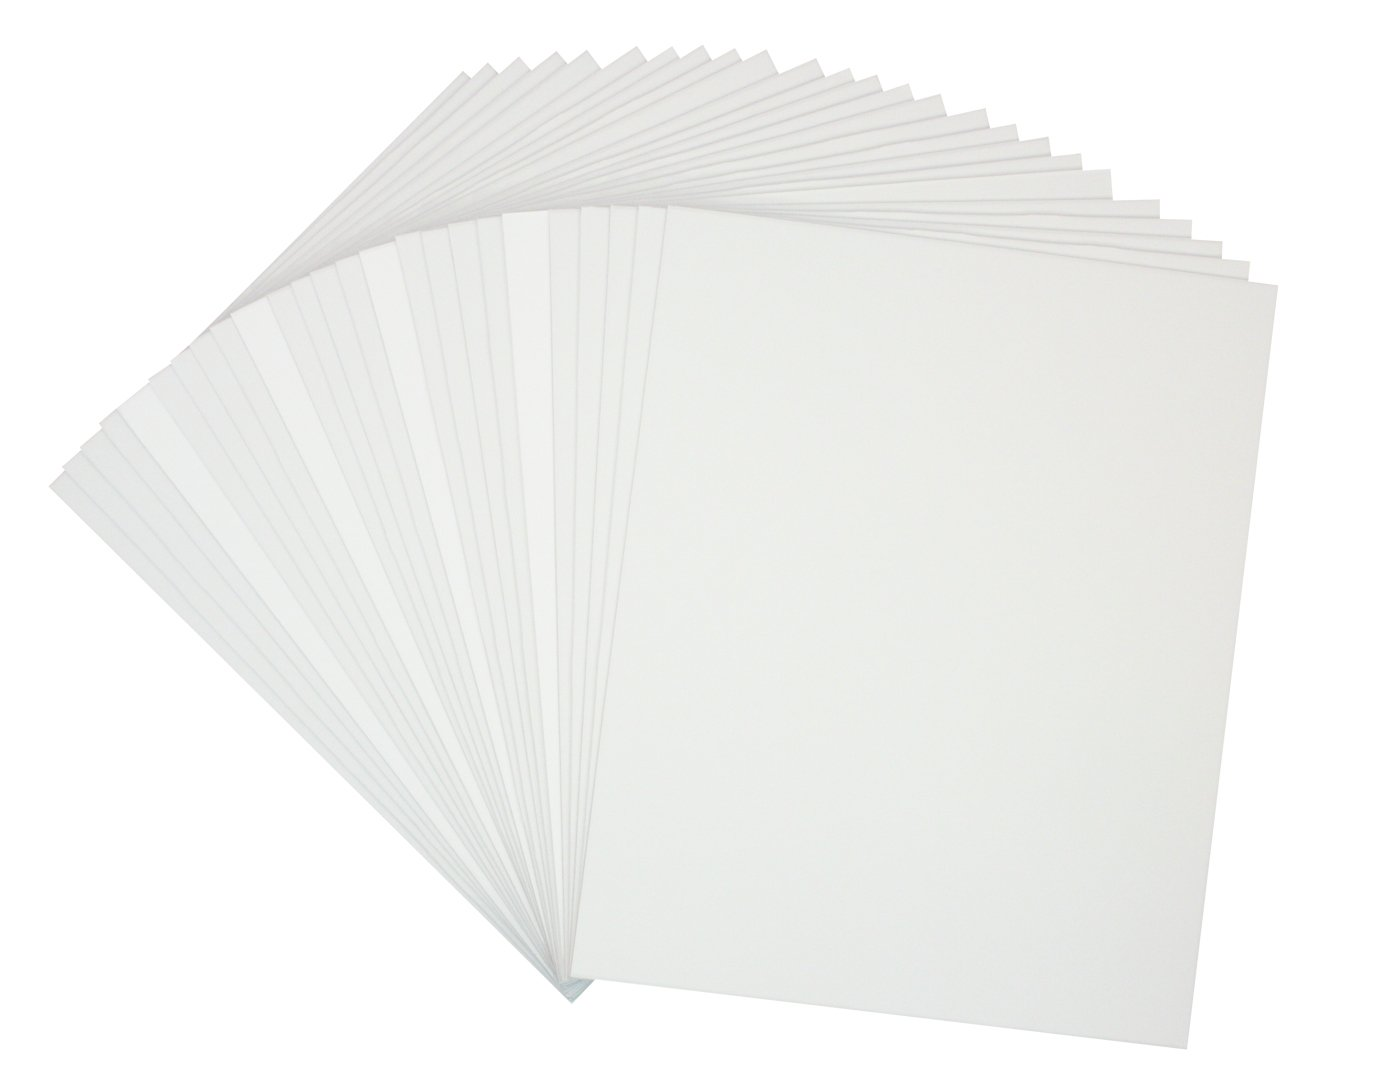 Golden State Art, Pack of 25, 8x10 Backerboards for Framing. Pack Contains 25 Backing Boards by Golden State Art